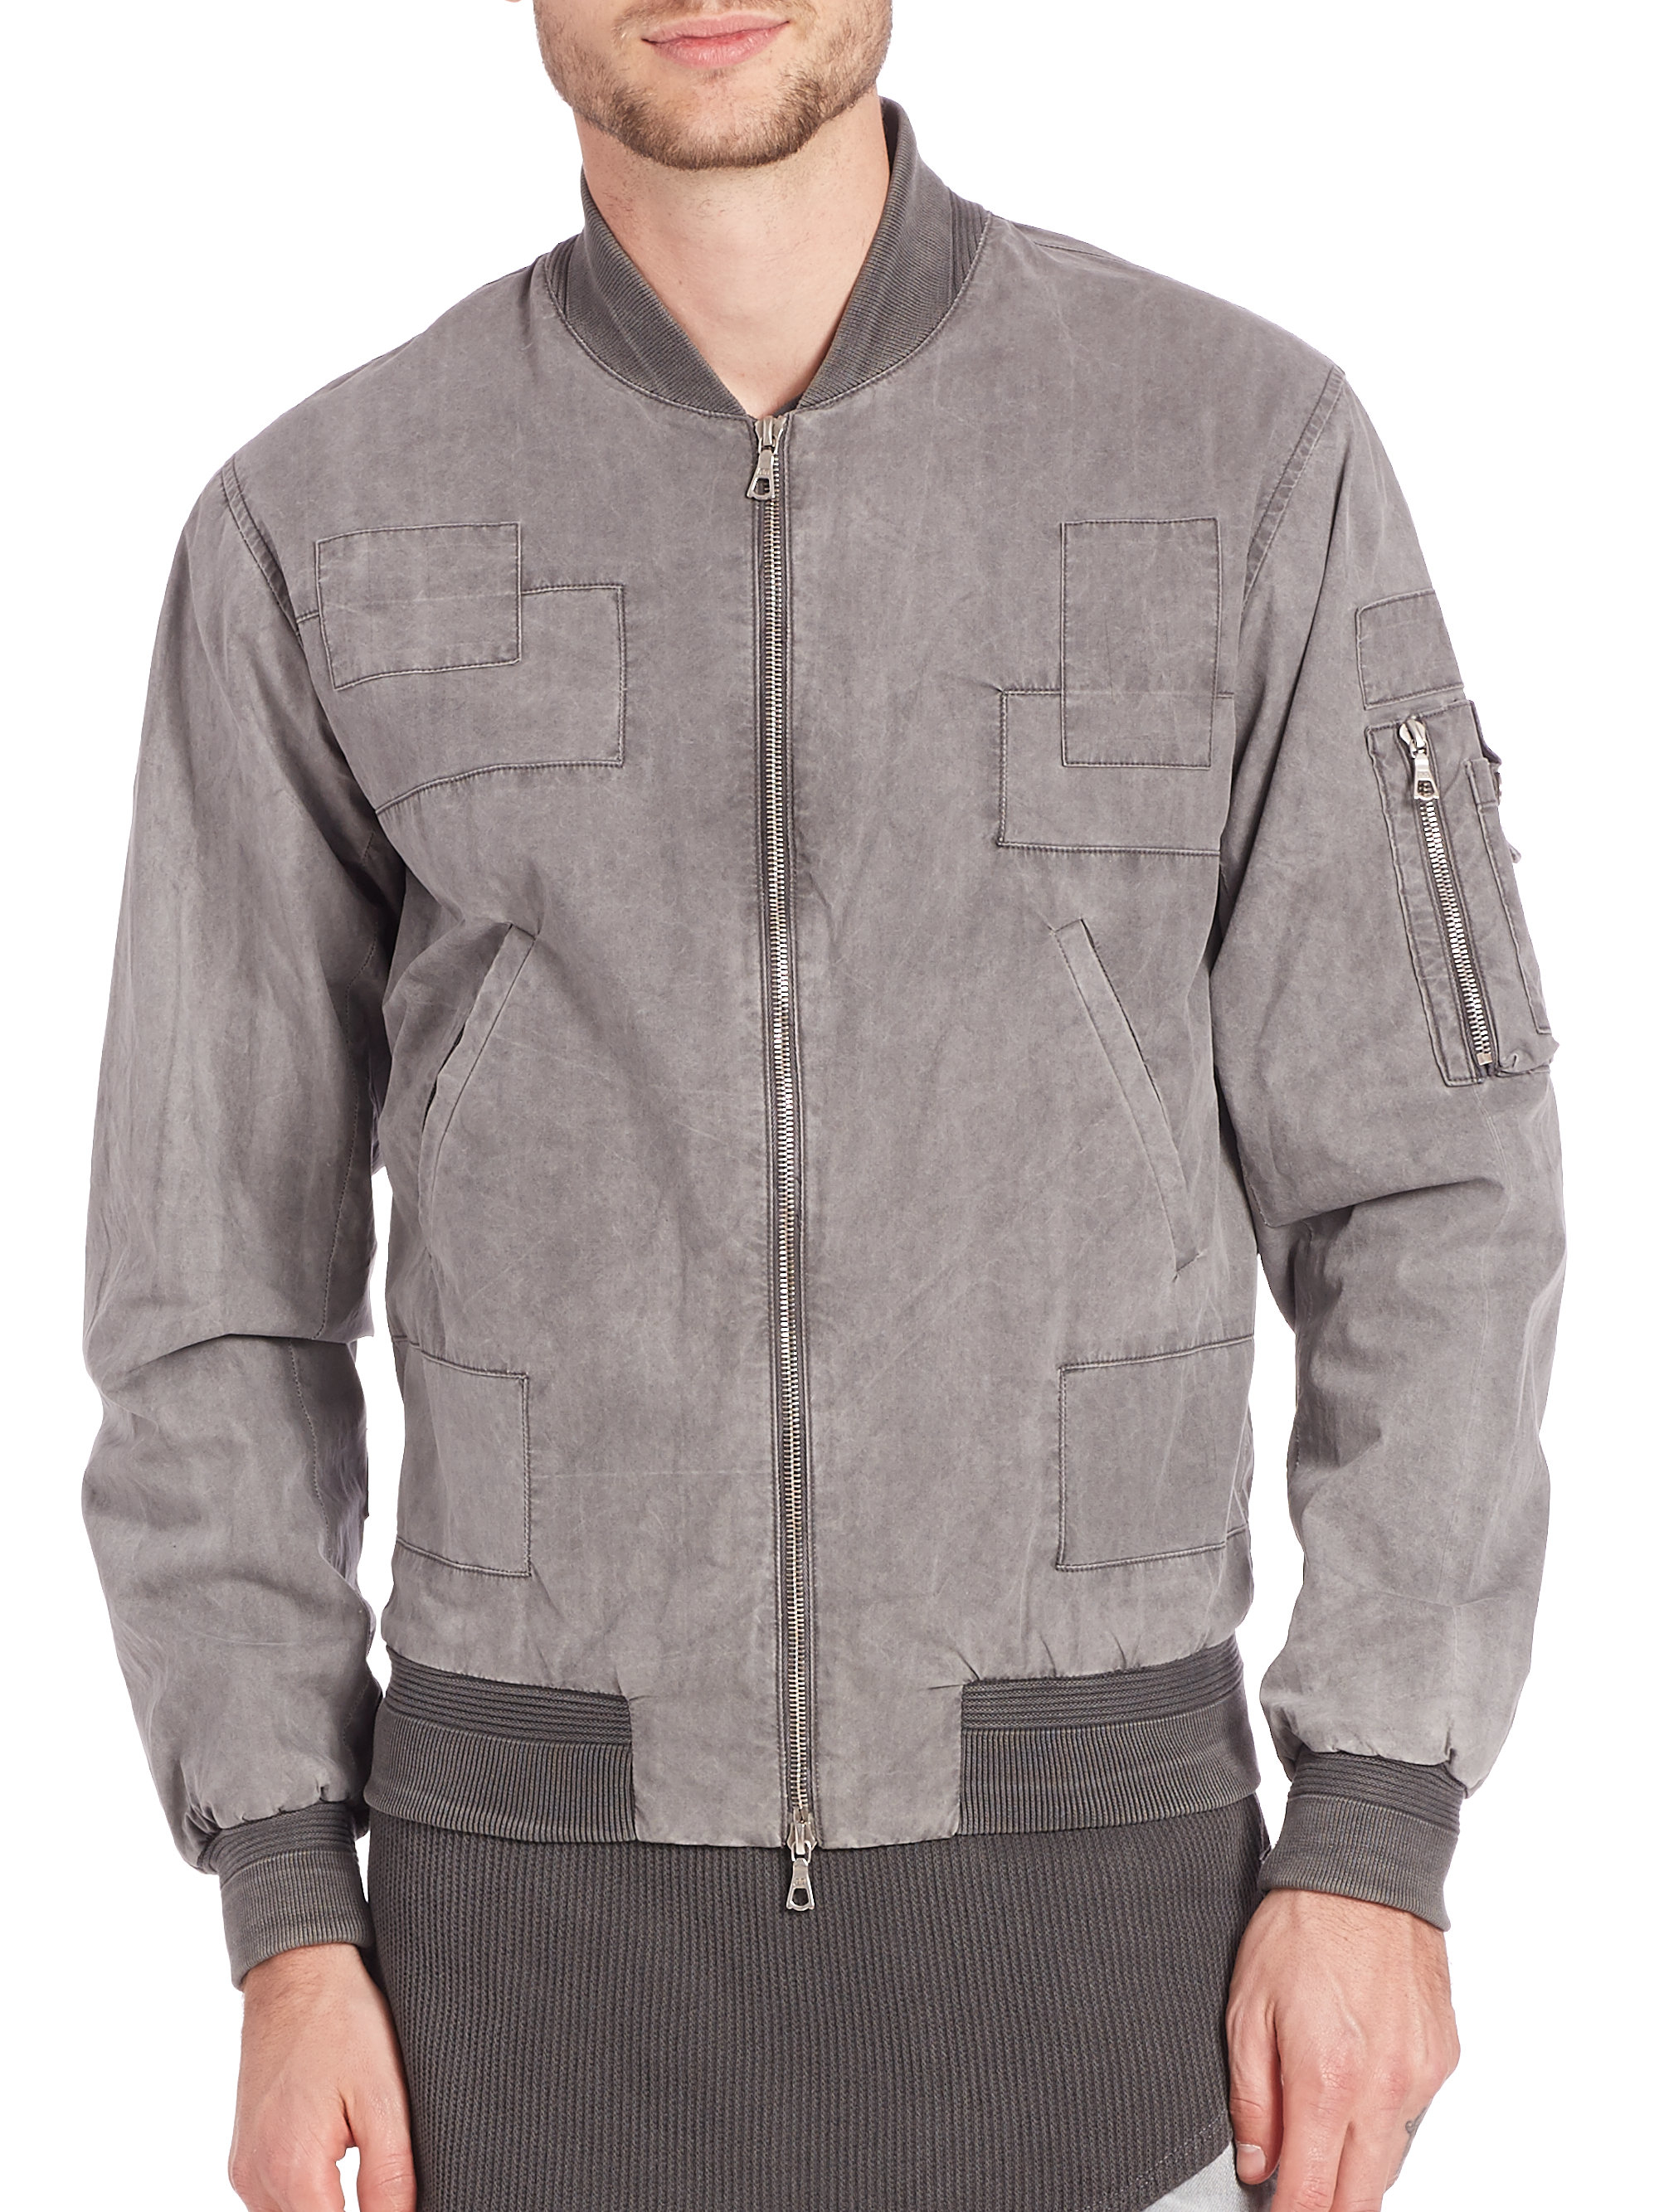 John elliott Paneled Flight Jacket in Gray for Men | Lyst